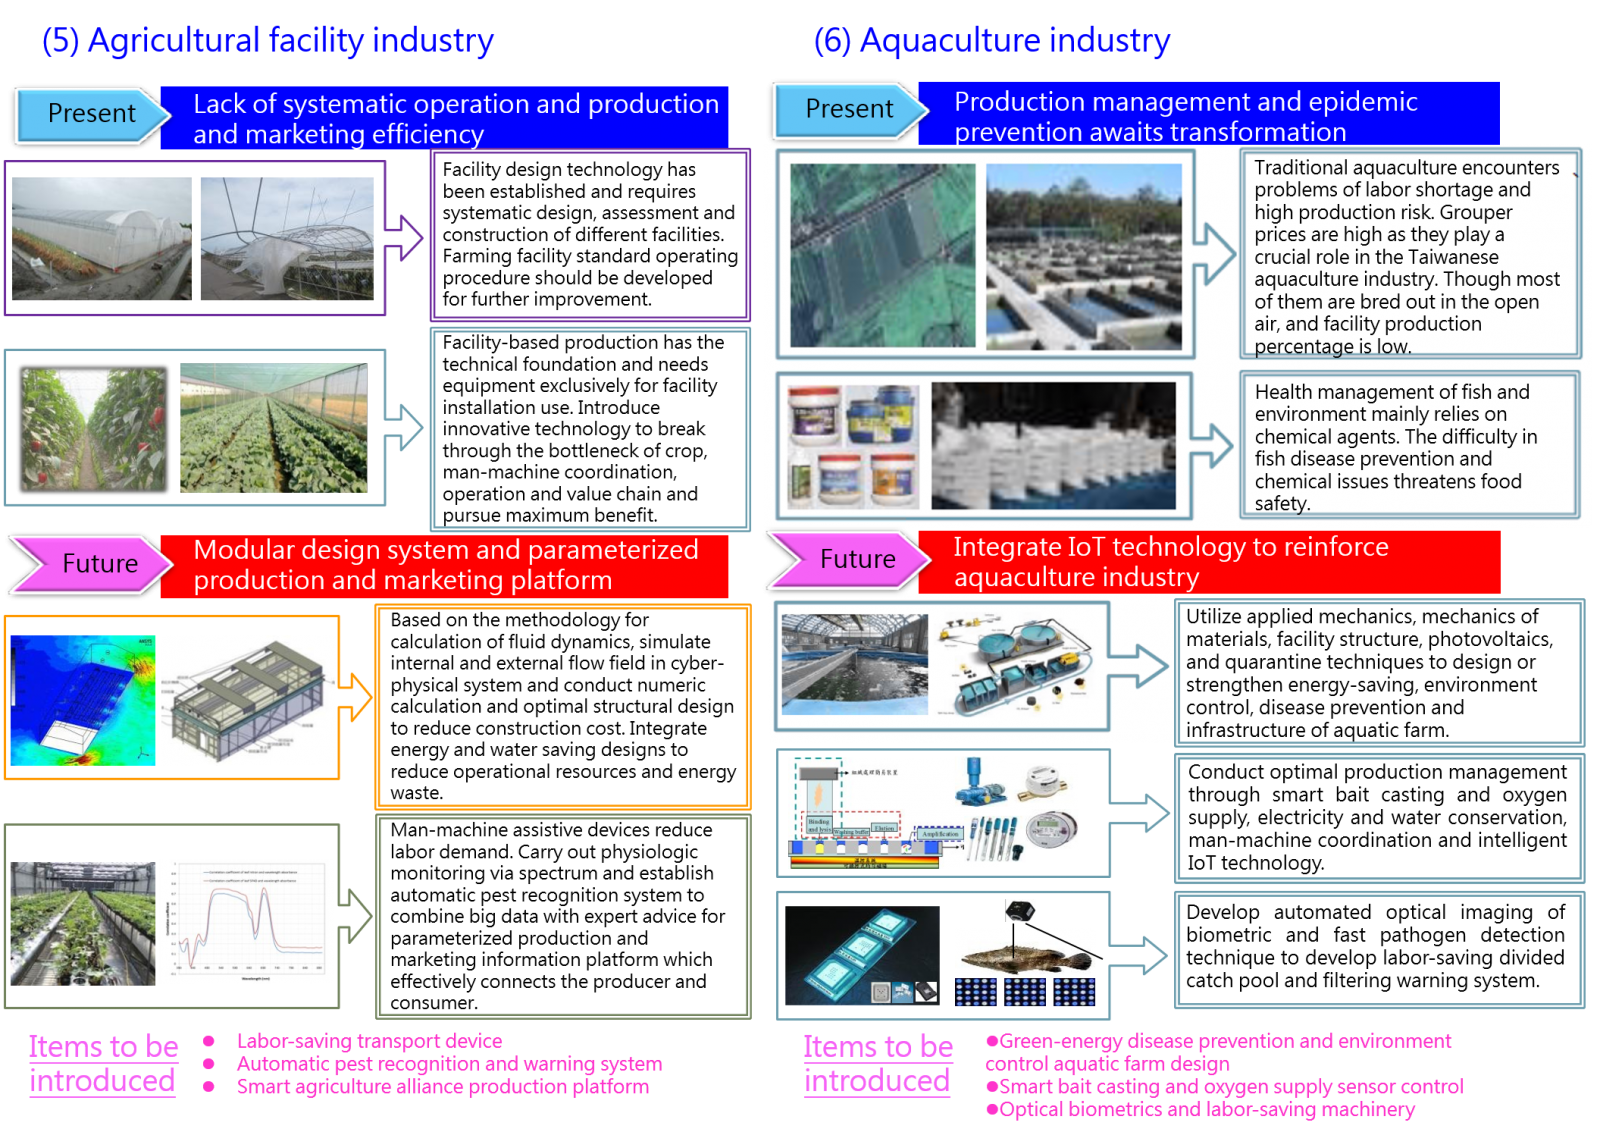 Figure 5: Current technological applications of agricultural facility and aquaculture industries, and application objectives after implementing Smart Agriculture 4.0.